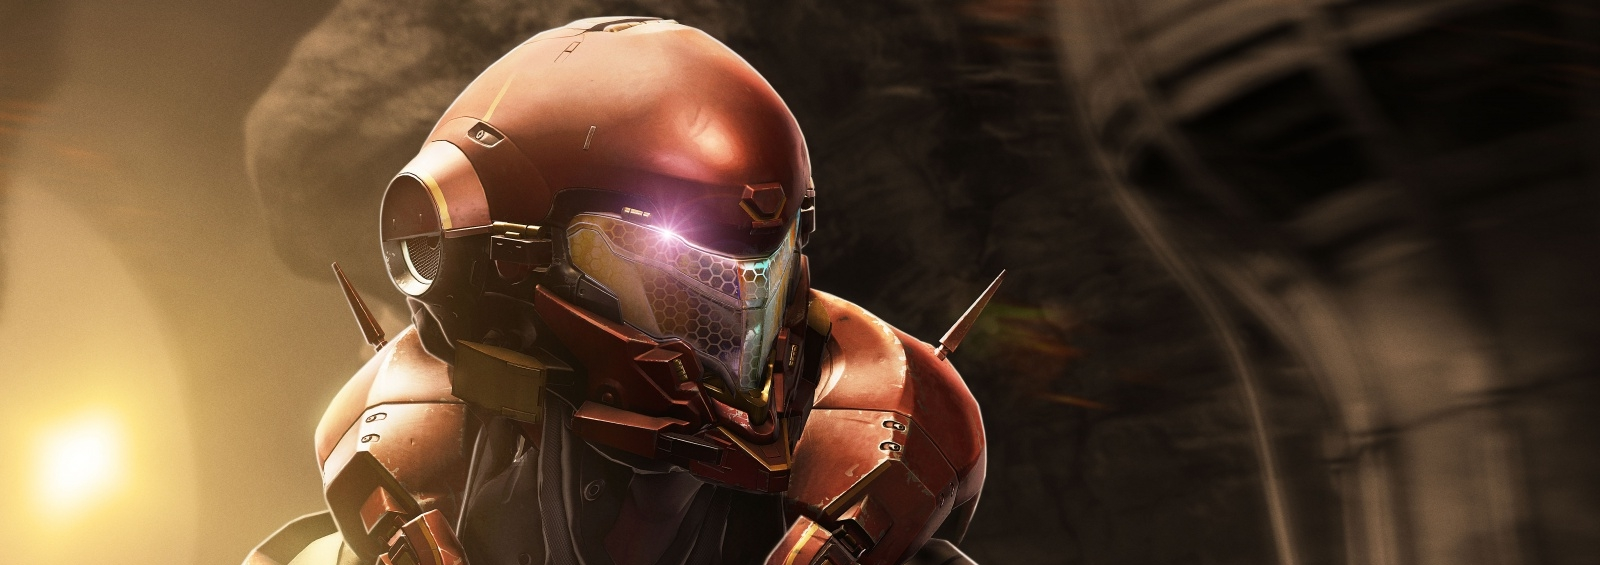 OLYMPIA VALE - Olympia Vale is a Spartan-IV super-soldier and member of Fireteam Osiris under Jameson Locke.